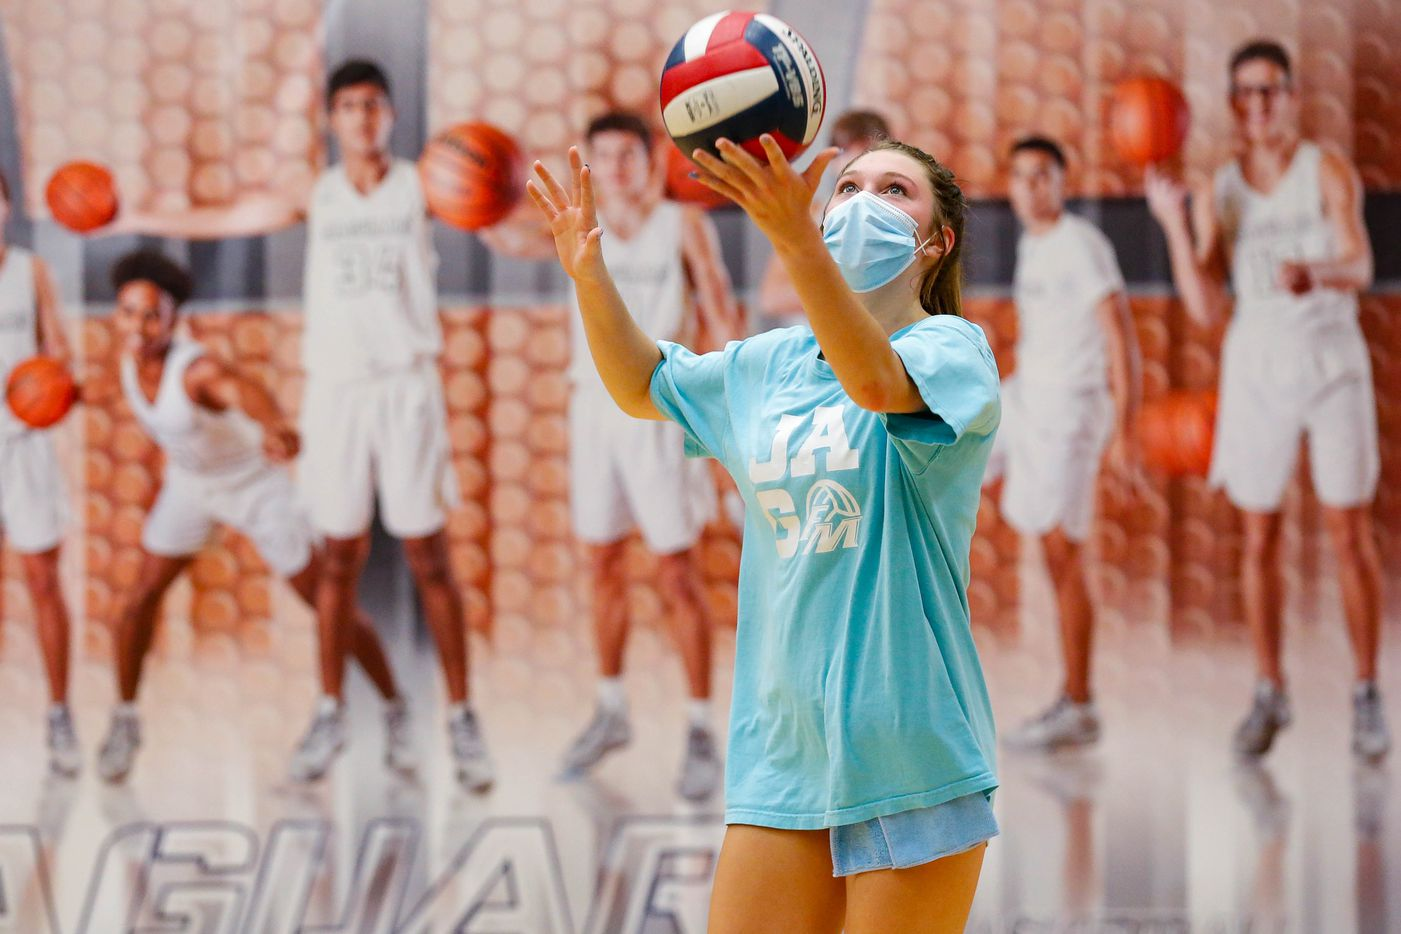 Flower Mound High School volleyball player Caroline Dykes prepares to serve the ball during practice on Sept. 8, 2020 in Flower Mound. (Juan Figueroa/ The Dallas Morning News)